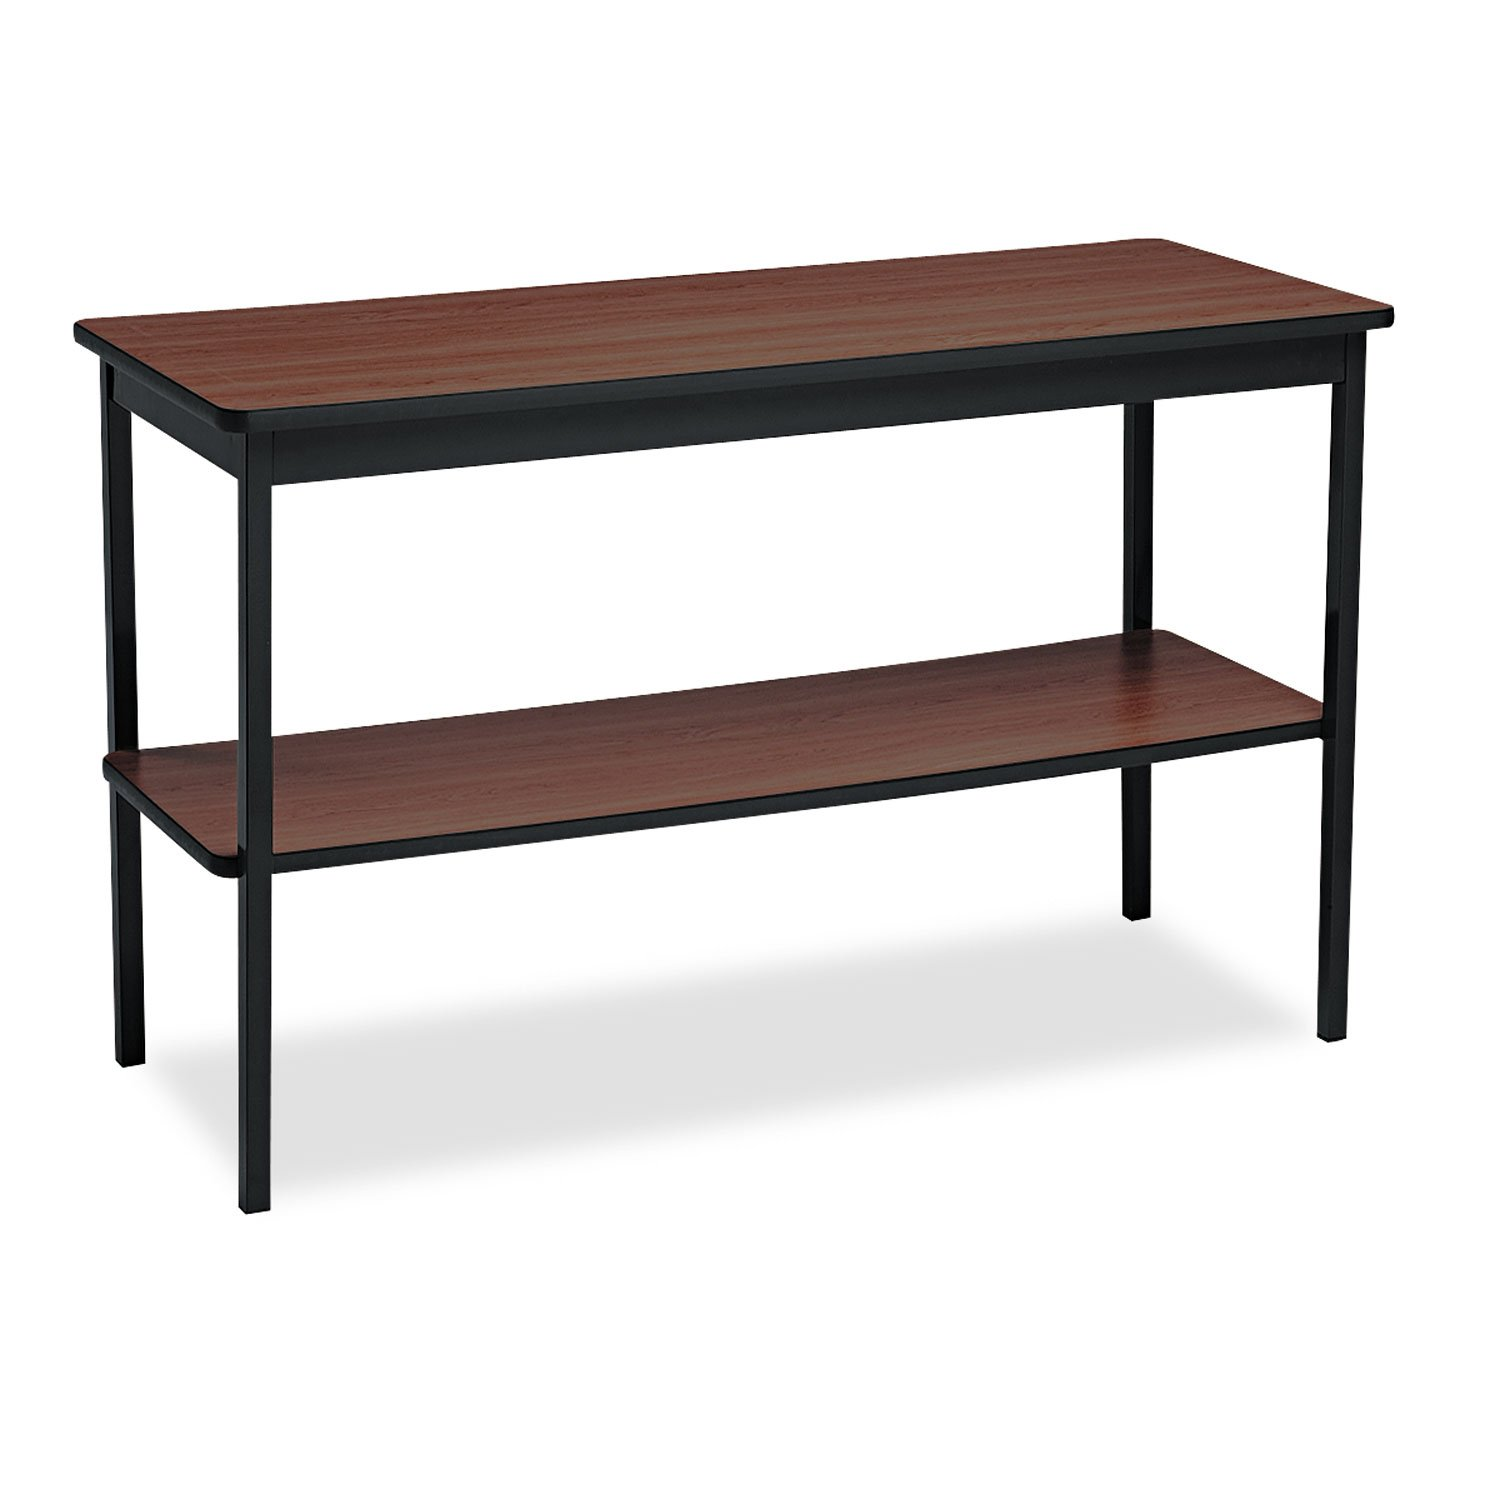 Barricks UTS1848WA Utility Table with Bottom Shelf, Rectangular, 48w x 18d x 30h, Walnut/Black by Barricks (Image #1)